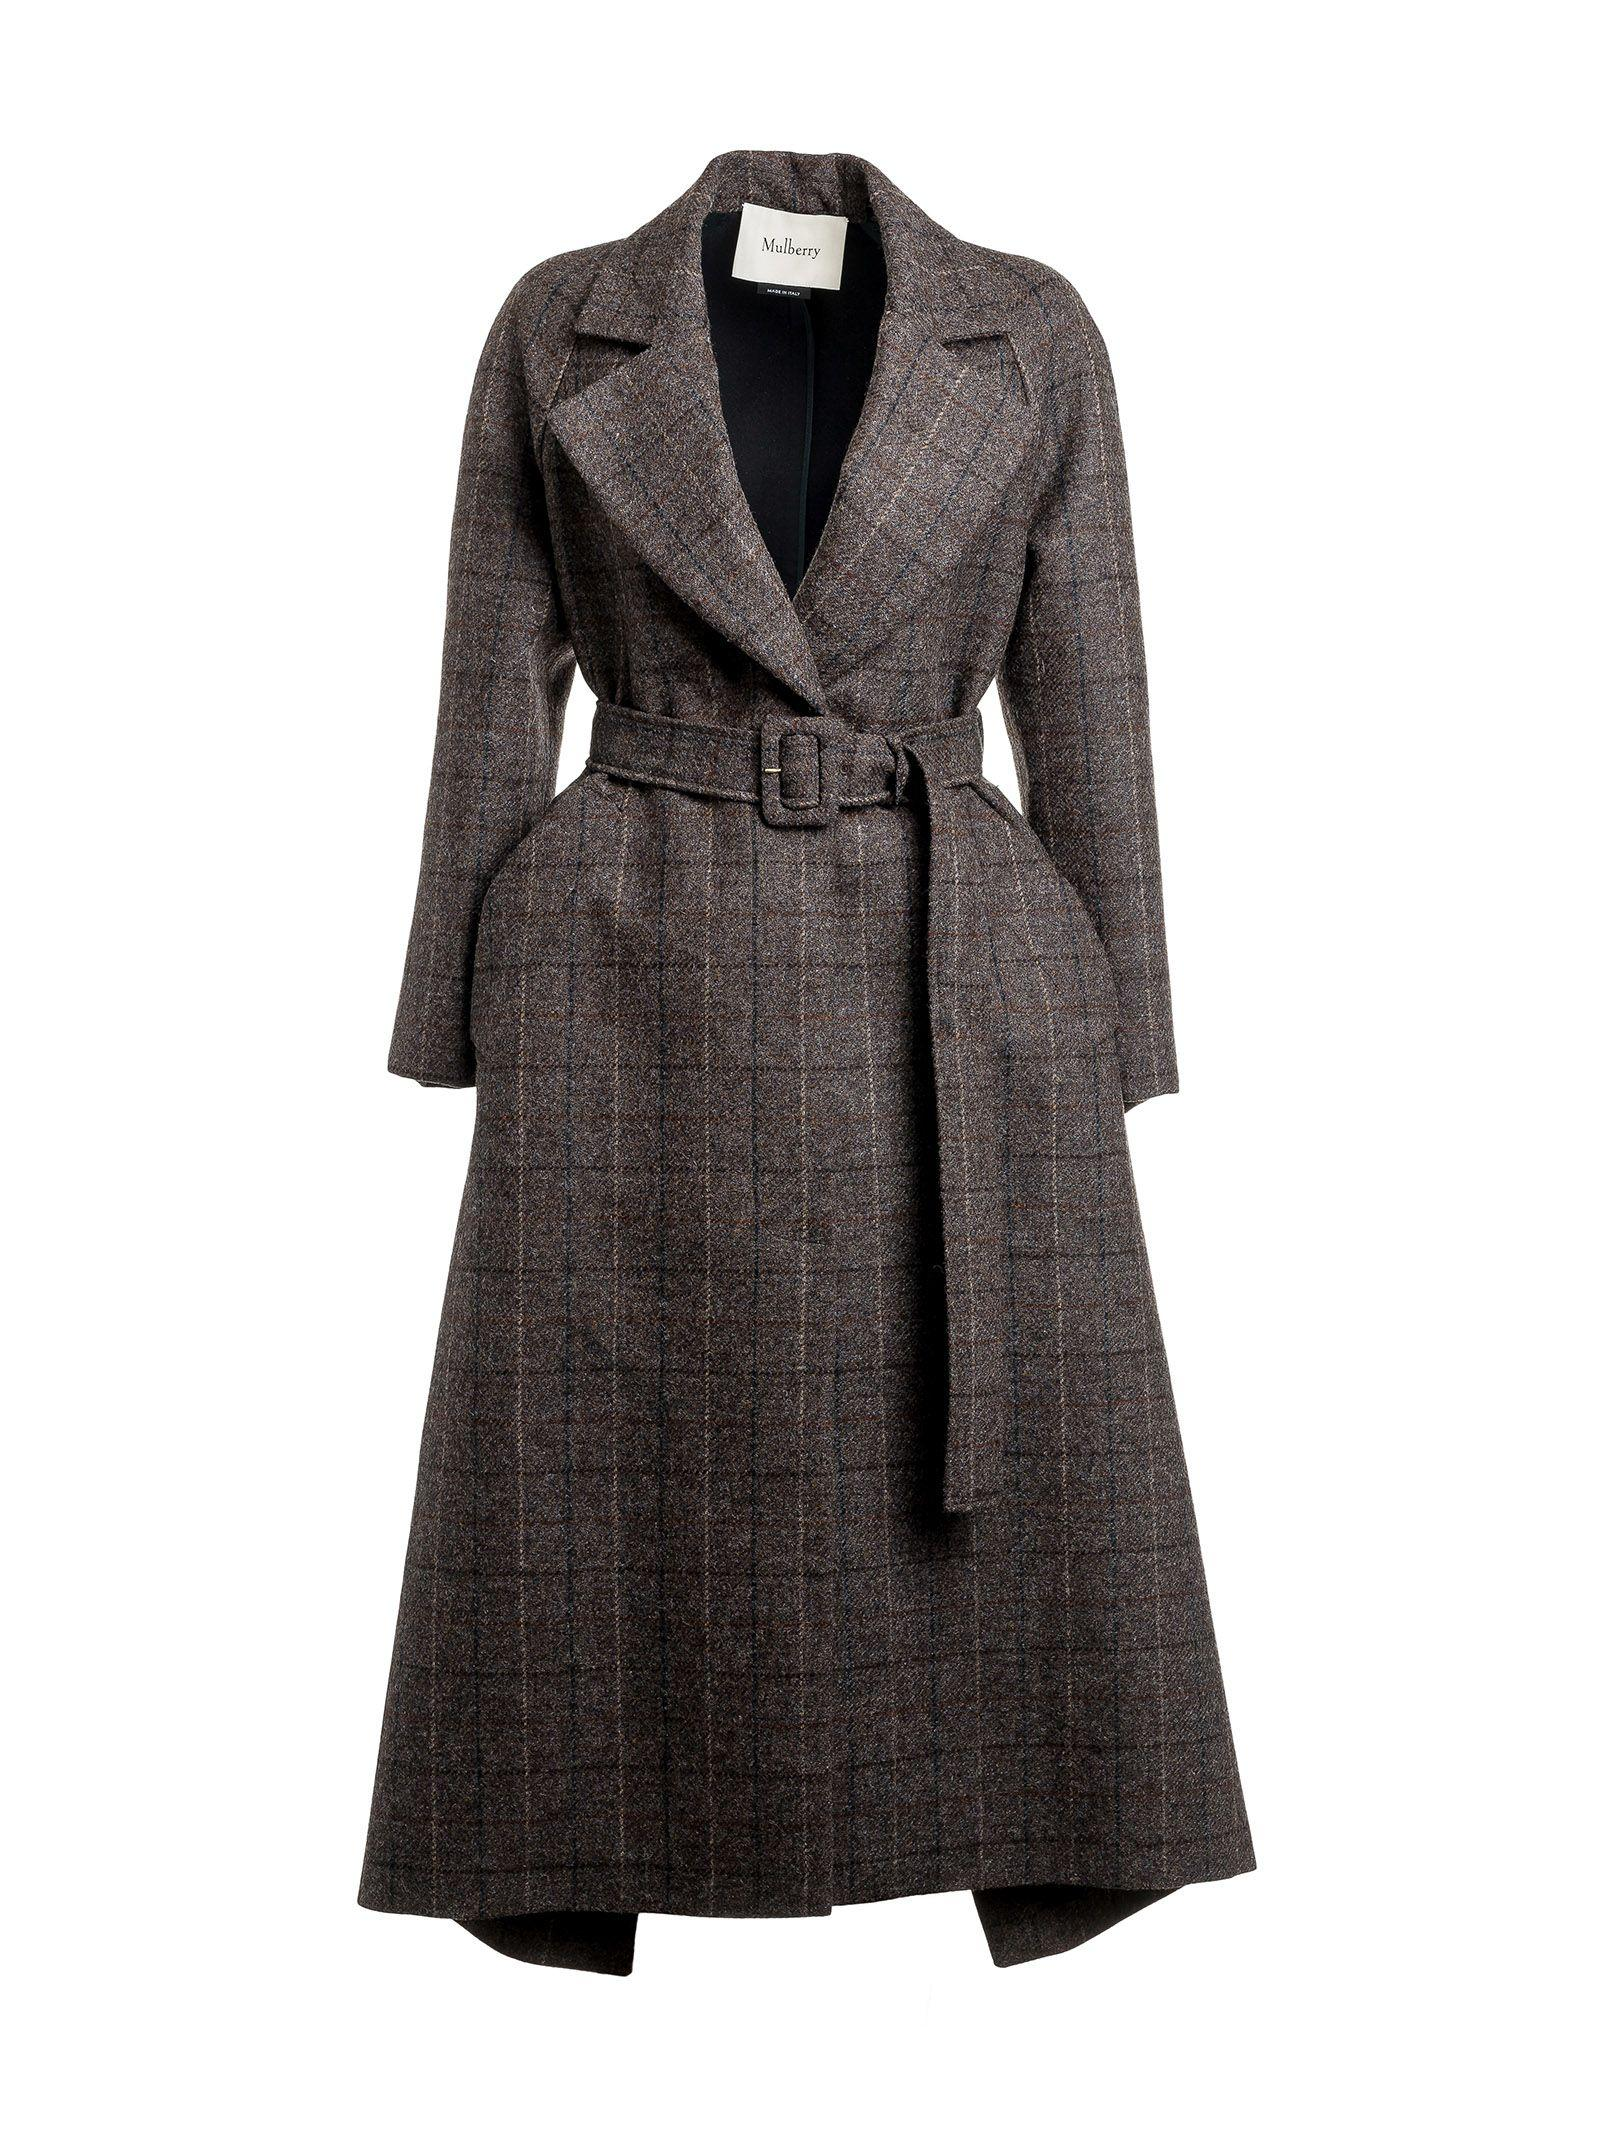 Mulberry Checked Belted Coat In Grey